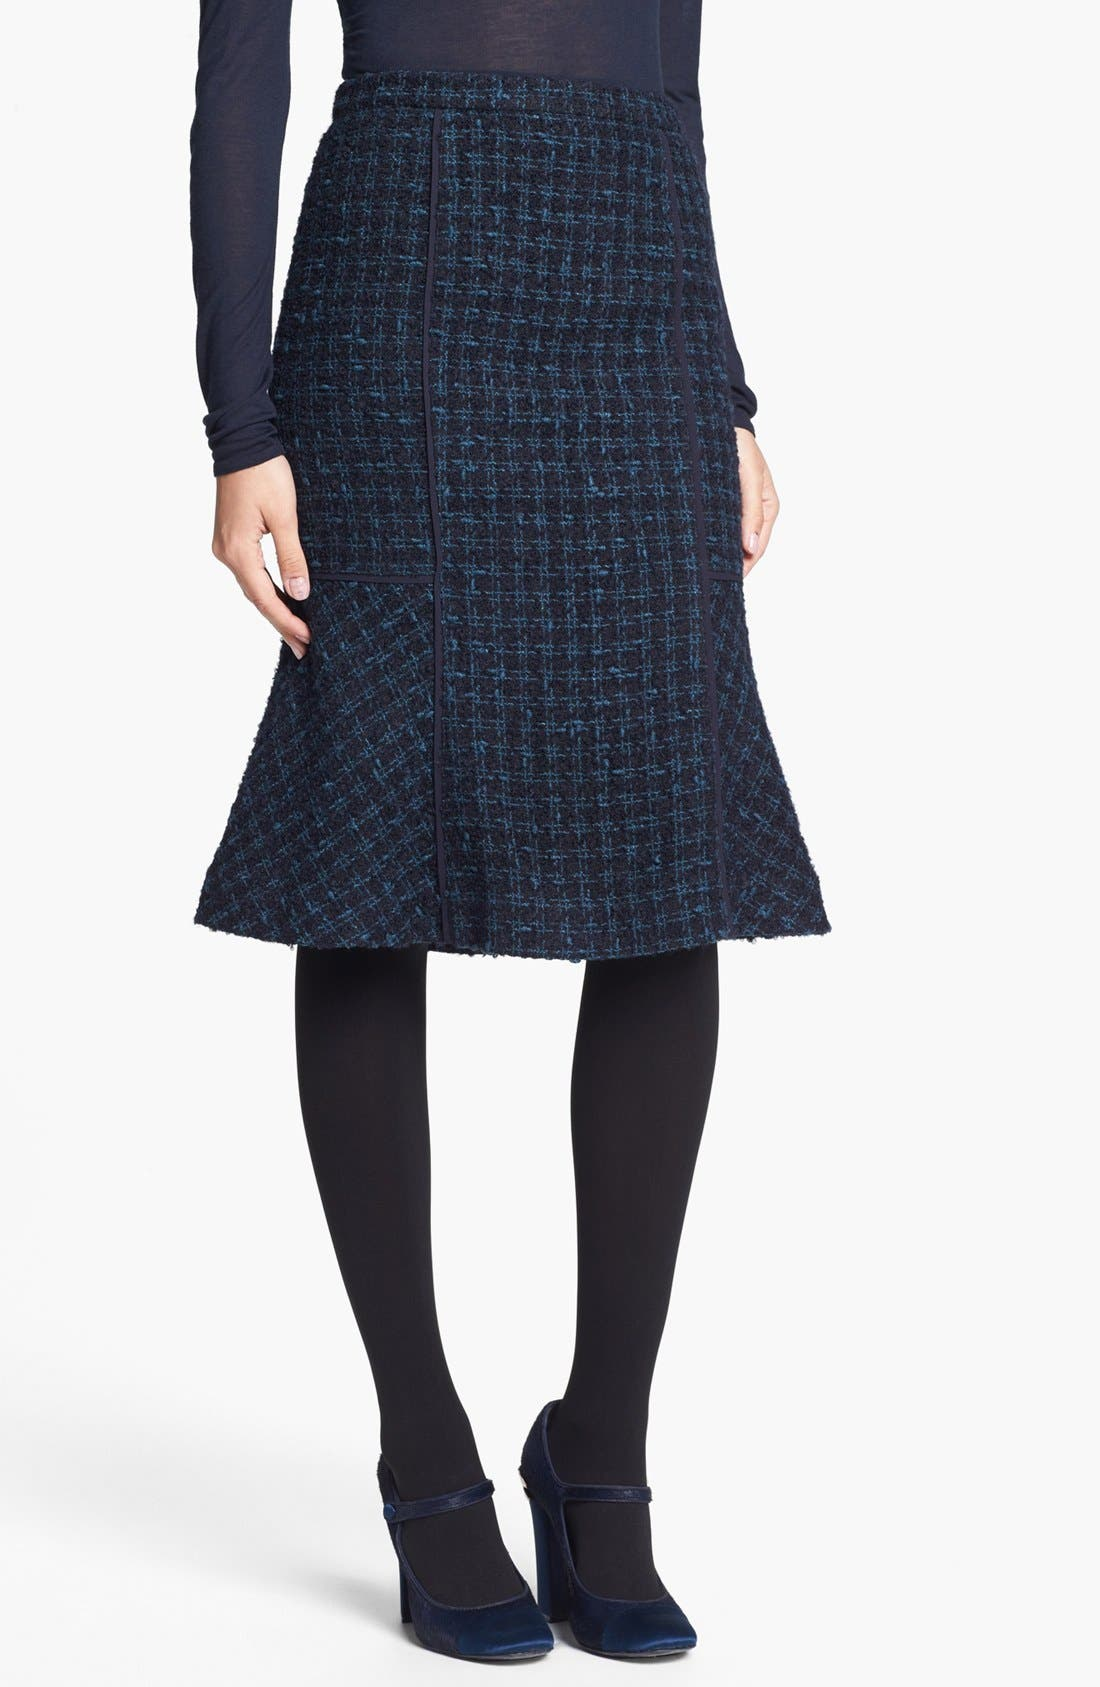 Alternate Image 1 Selected - Tory Burch 'Sloane' Tweed Skirt